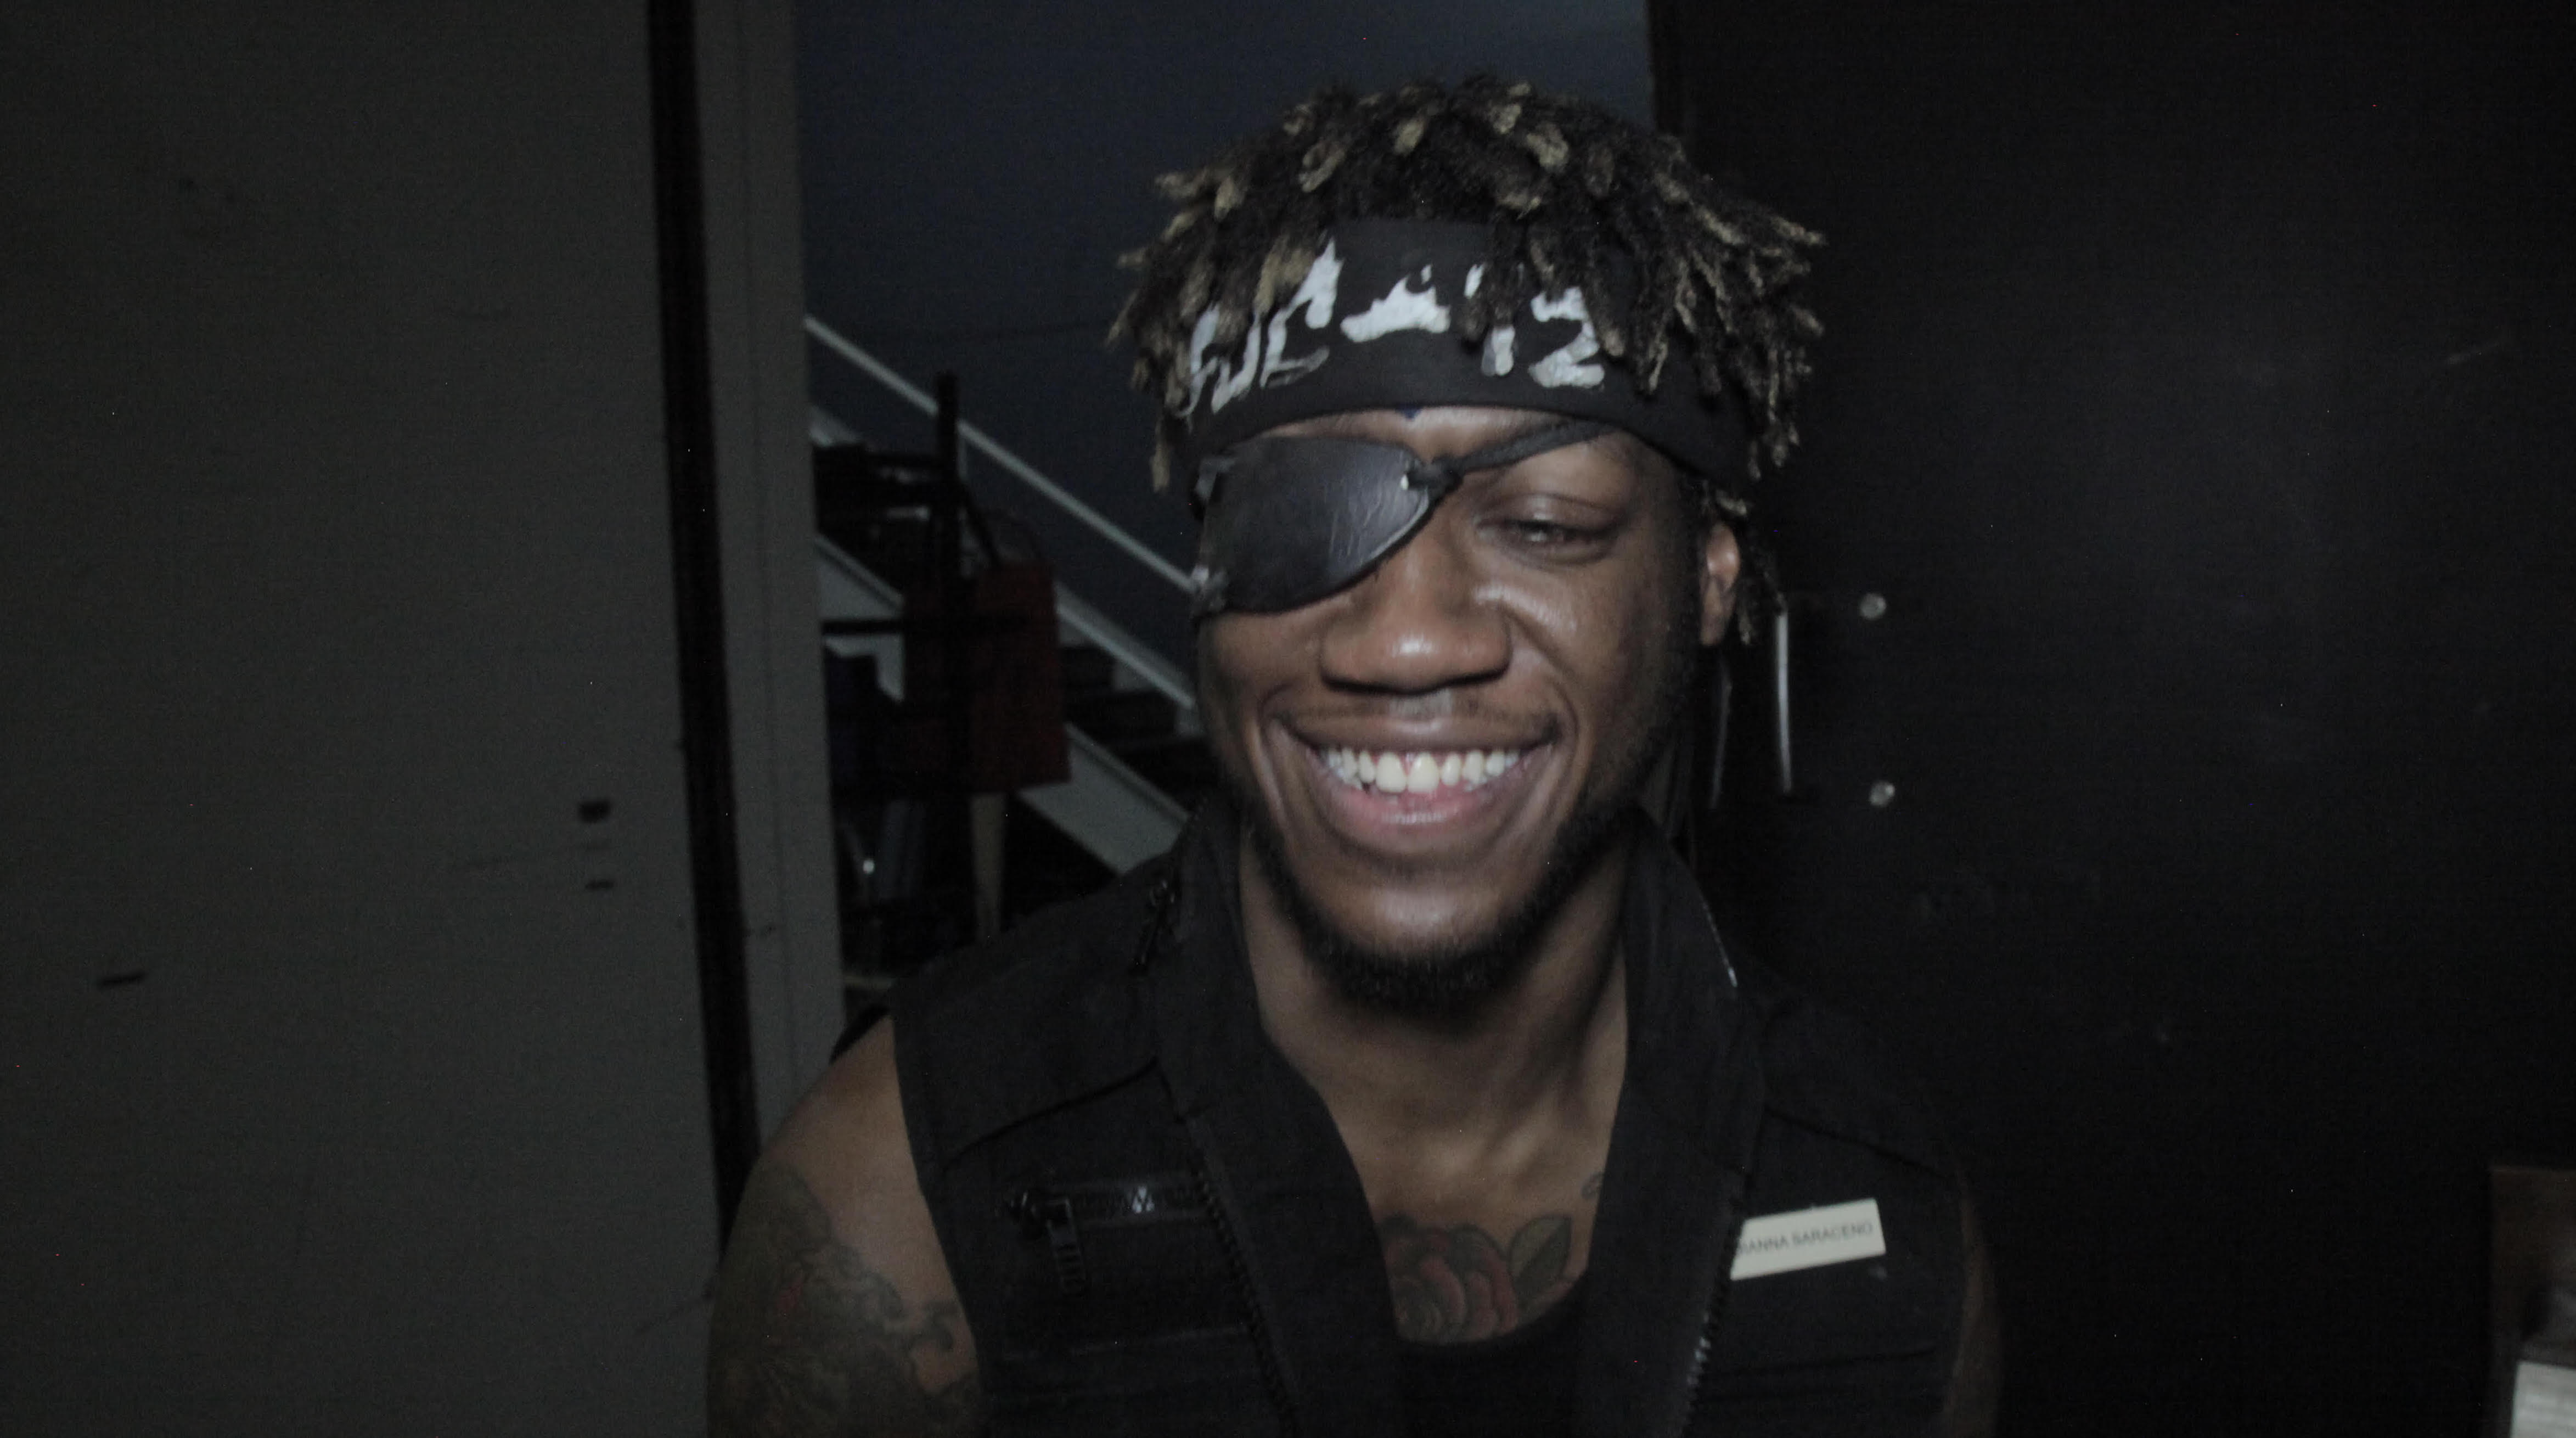 OG Maco Talks Car Crash In New Exclusive Interview With HipHopsRevival